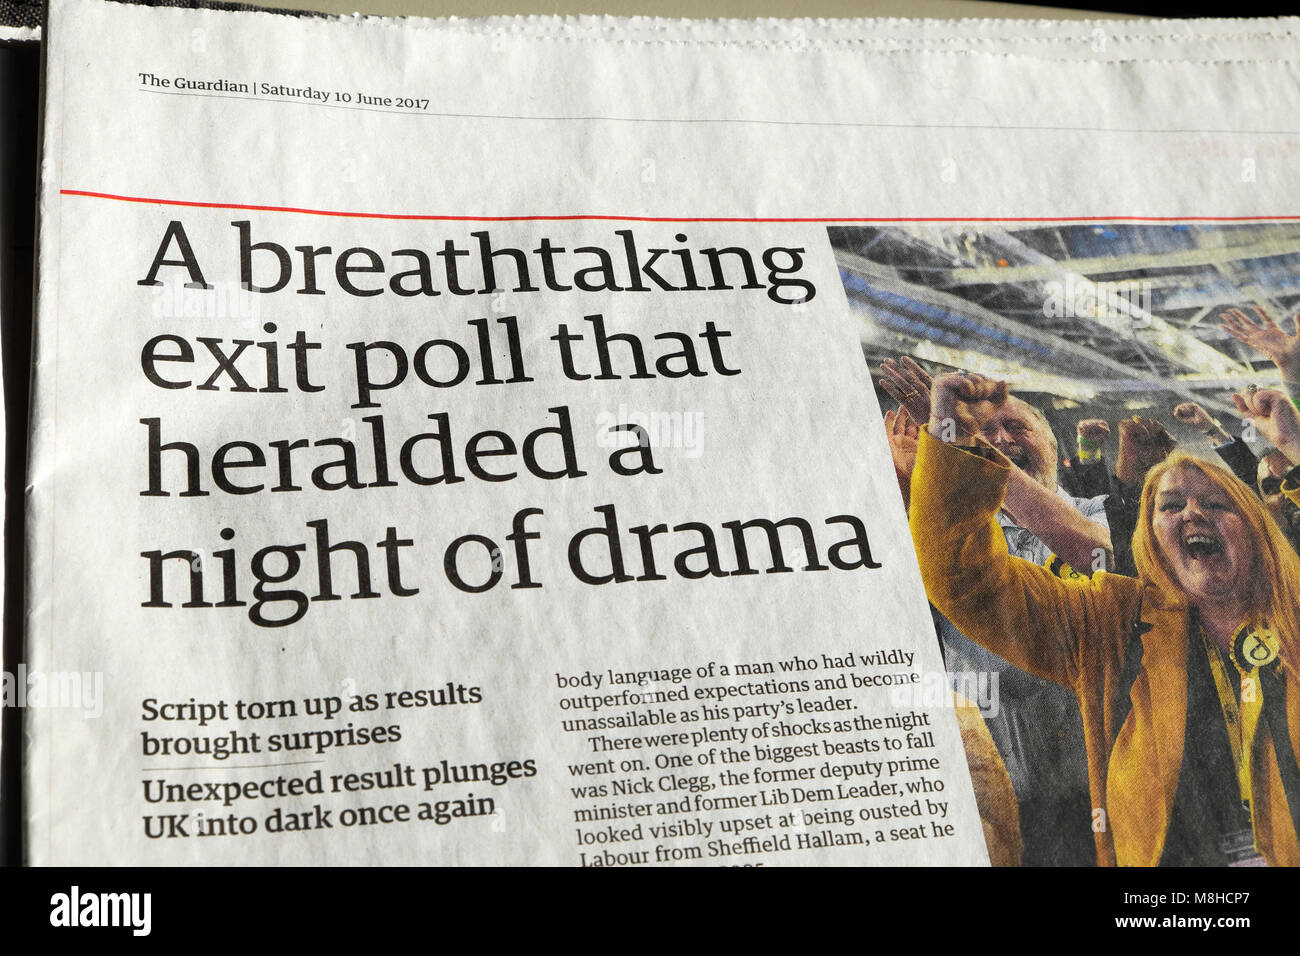 Guardian newspaper article 'A breathtaking exit poll that heralded a night of drama'  2017 election results - Stock Image